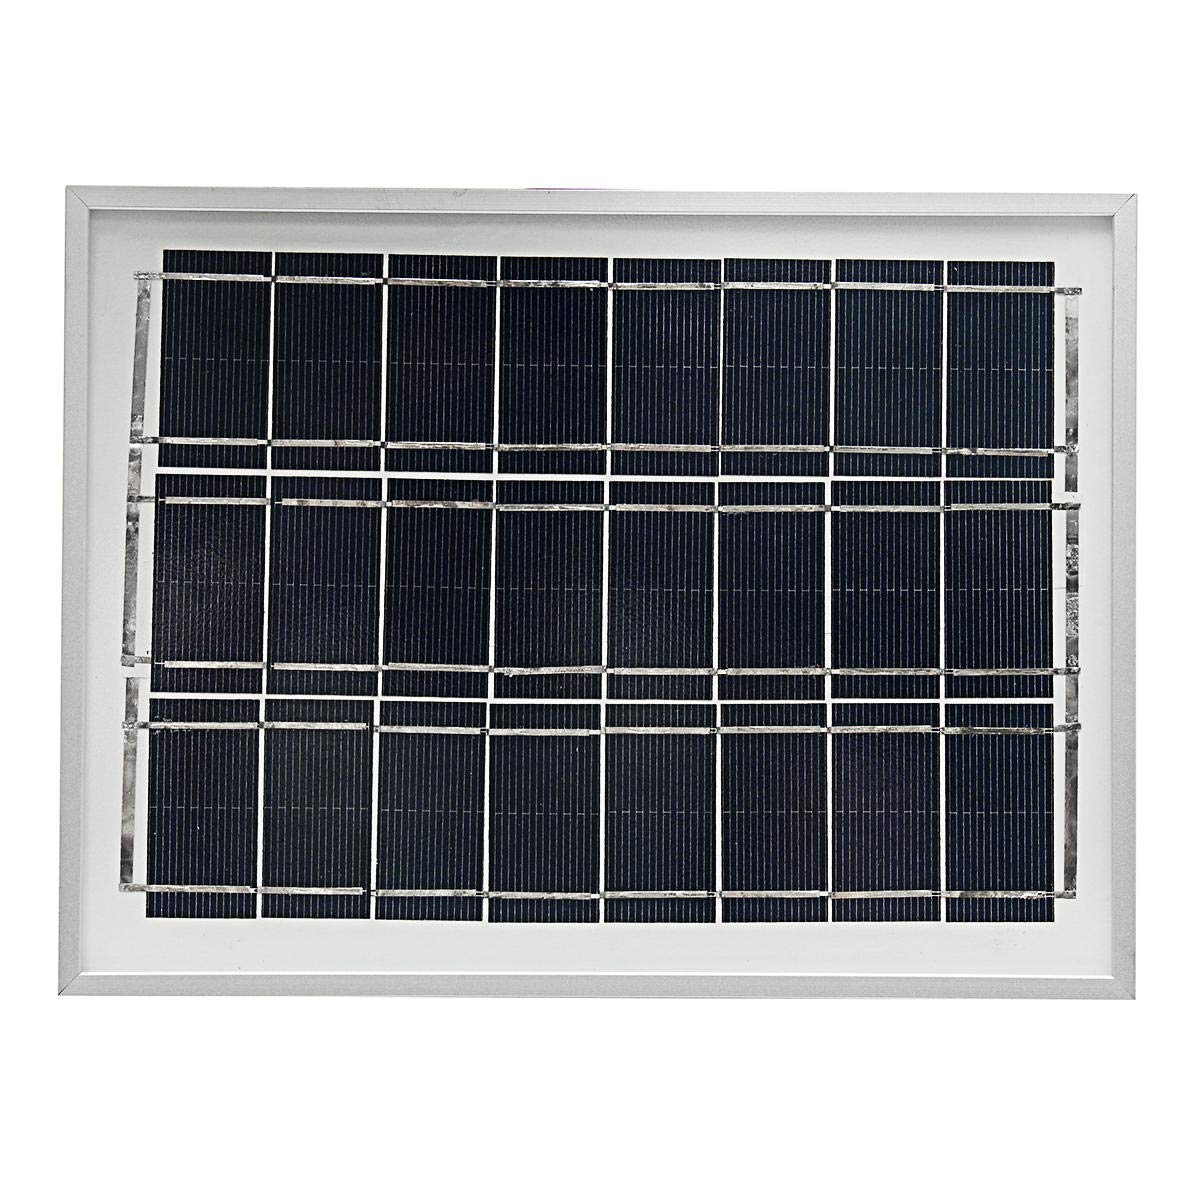 12V 4W Polycrystalline A-Class Solar Panel System For Home Garden - Electrical Equipment & Supplies Generator & Supplies -1 x Solar Panel